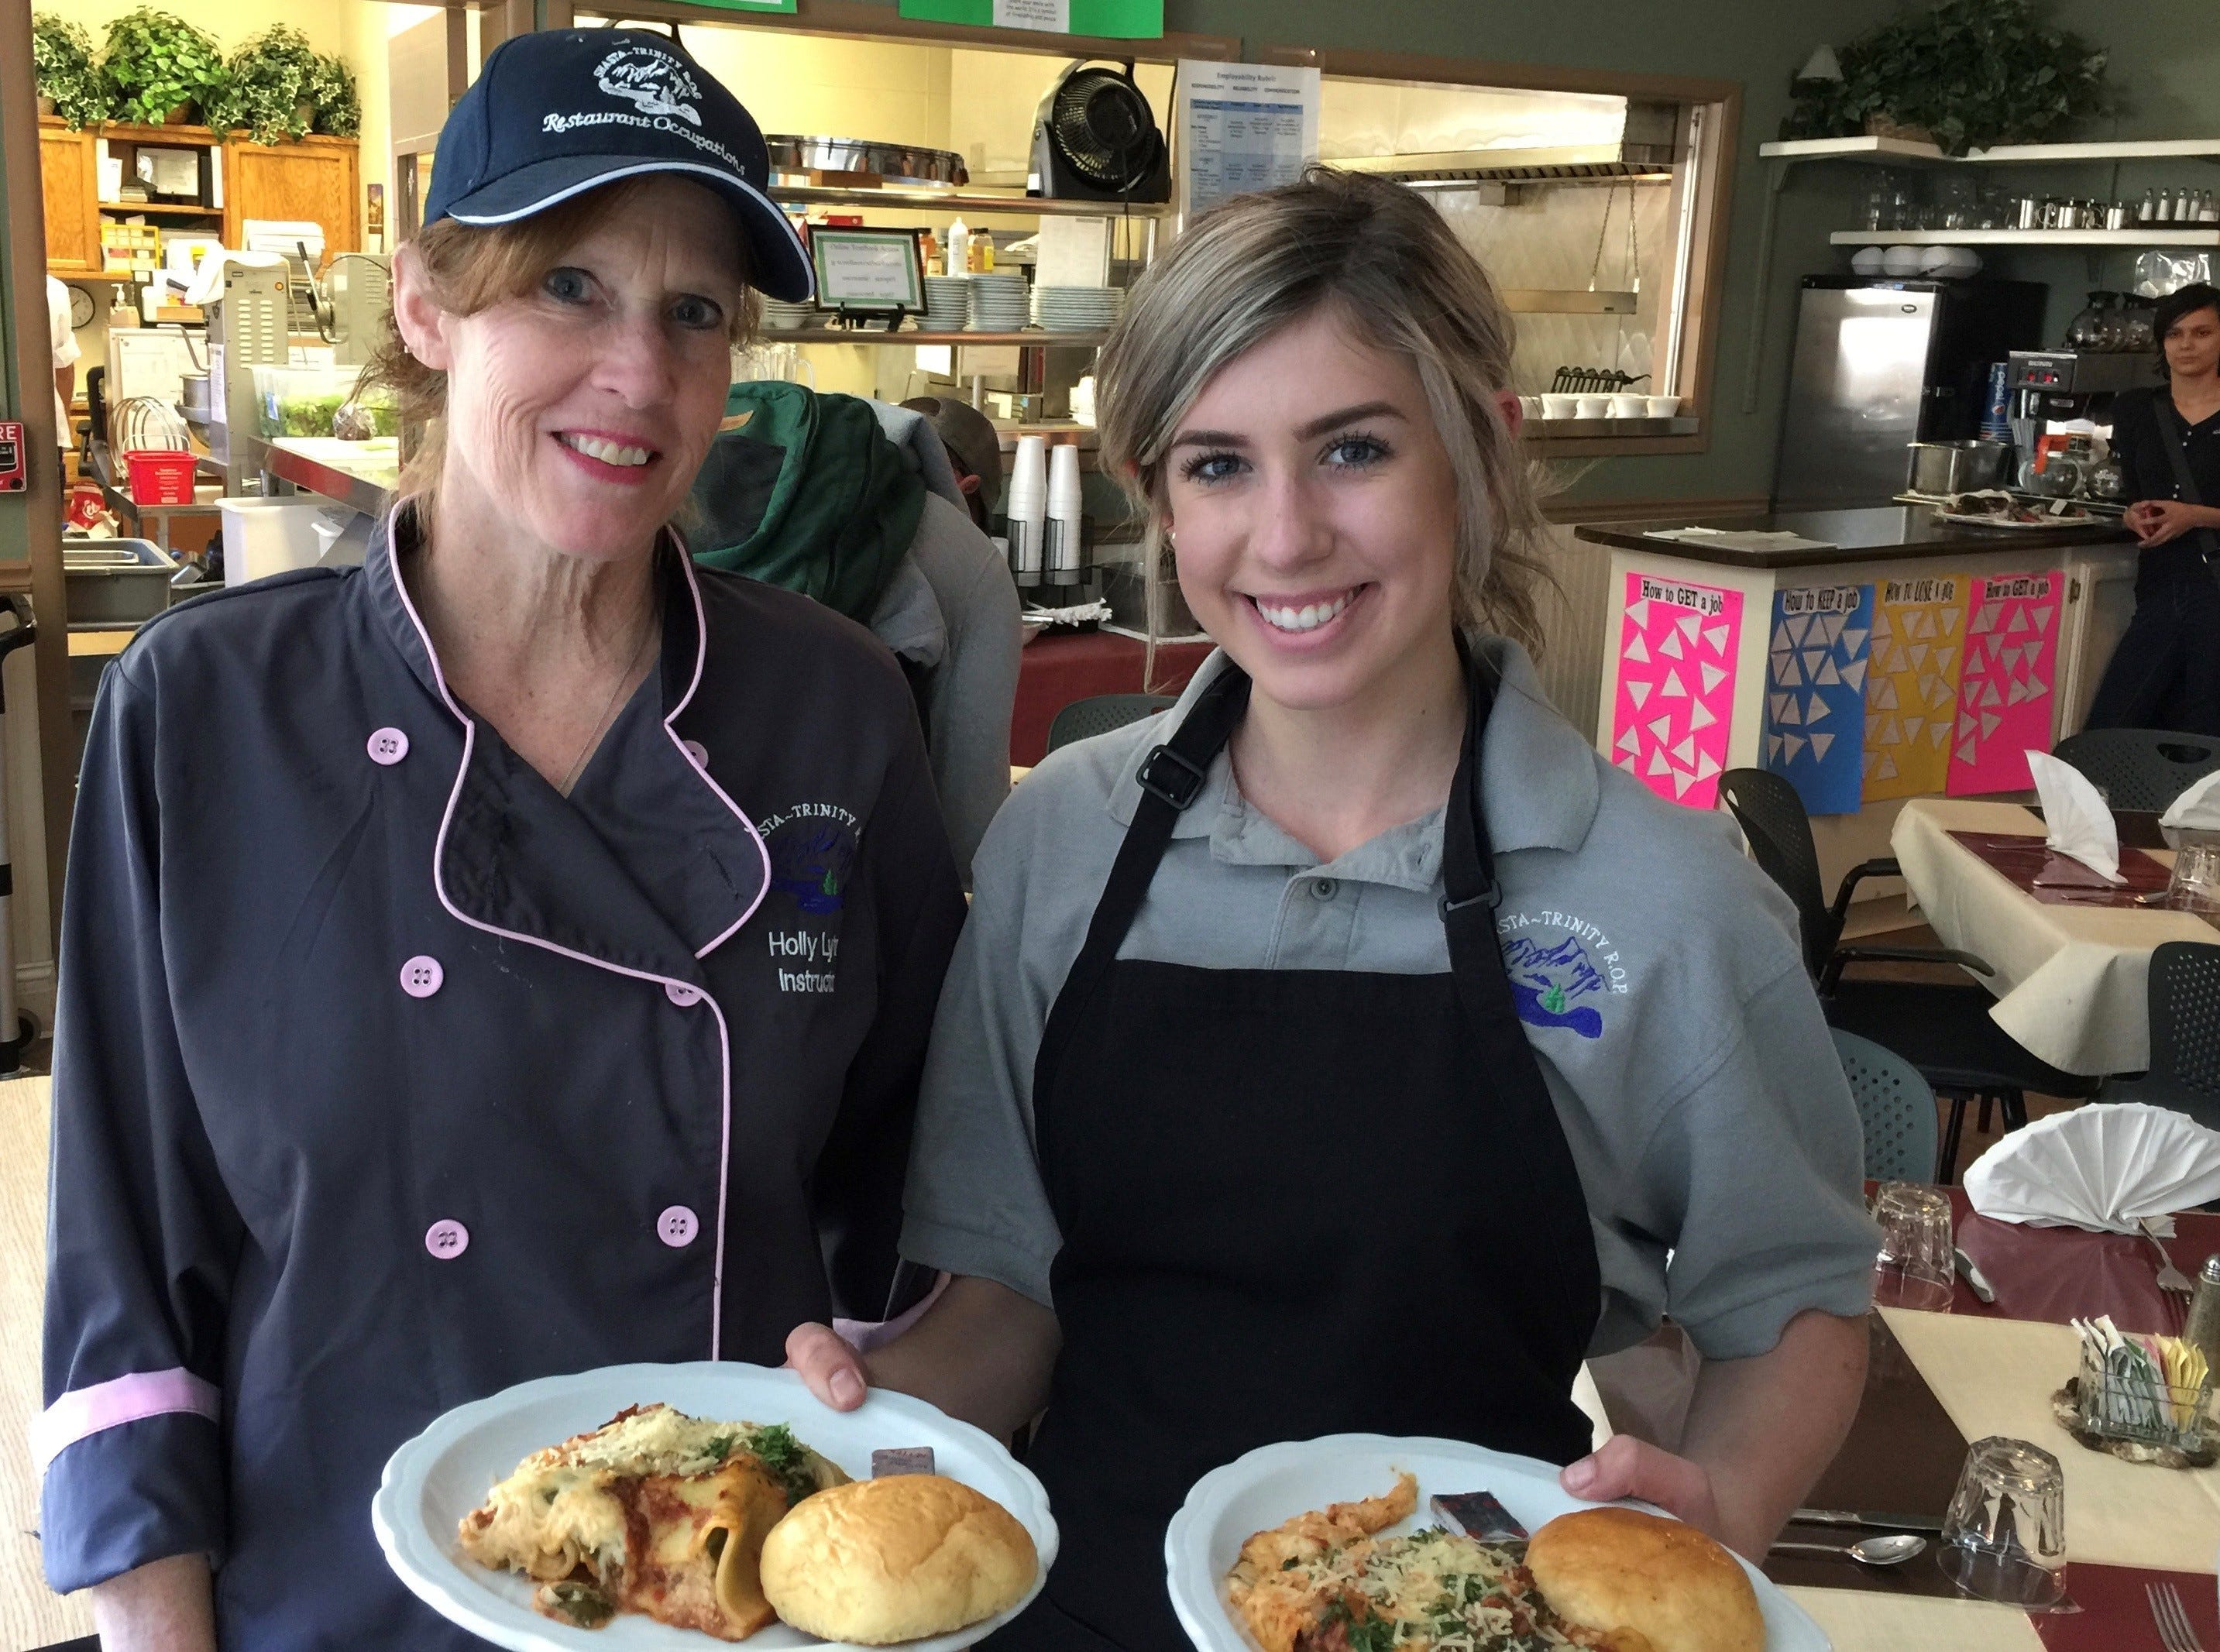 Instructor Holly Lyter and student server Kate Kuzia at The Classroom restaurant on Magnolia Avenue in Redding.